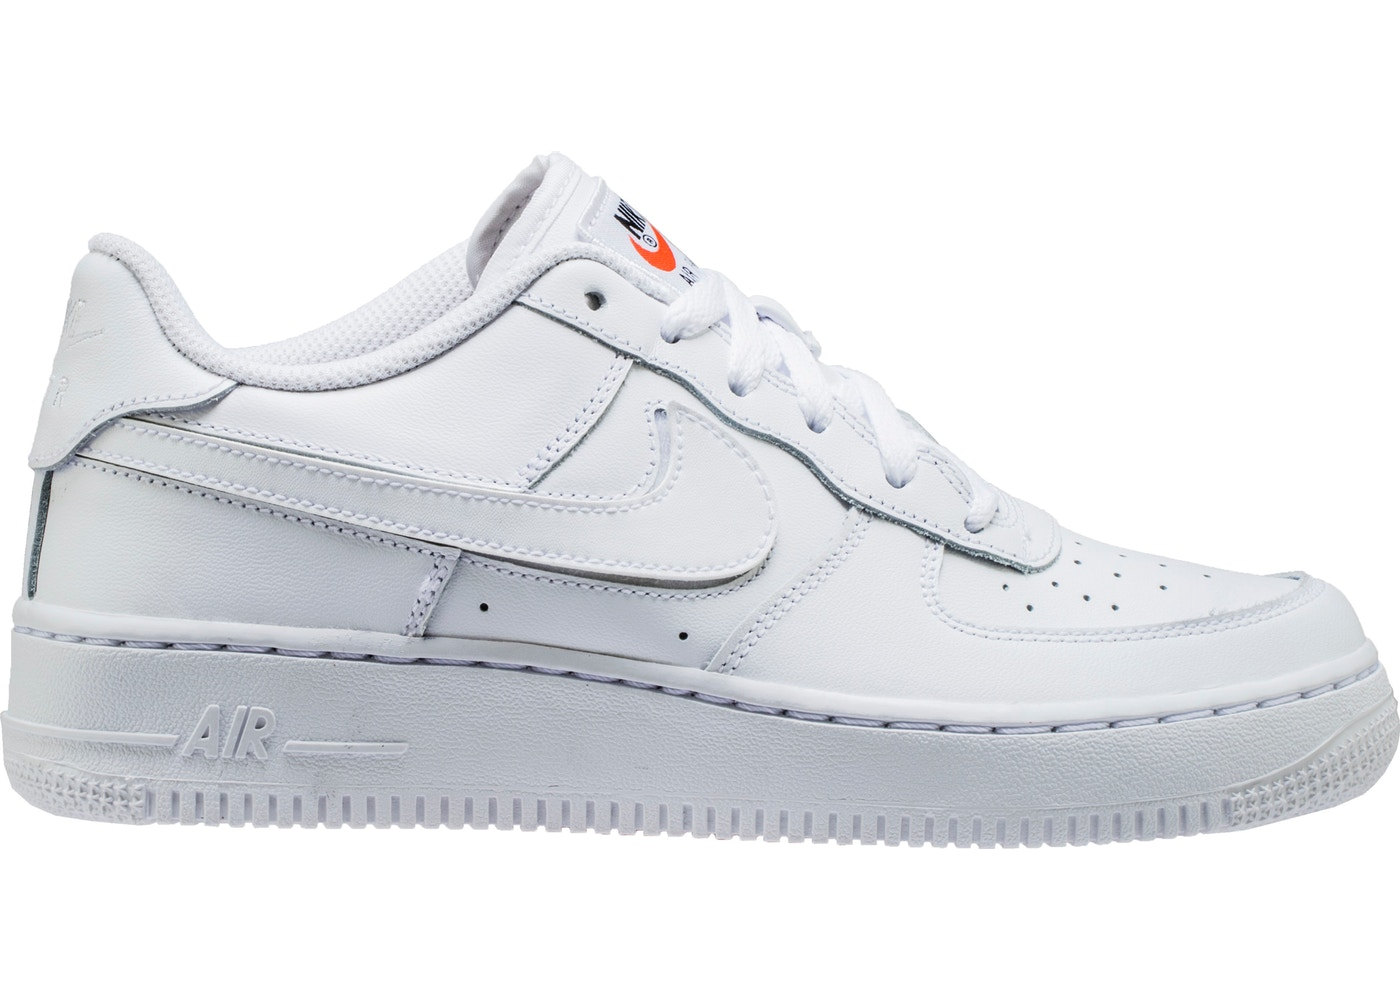 half off d8e48 380bc Air Force 1 Low Swoosh Pack All-Star 2018 White (GS)